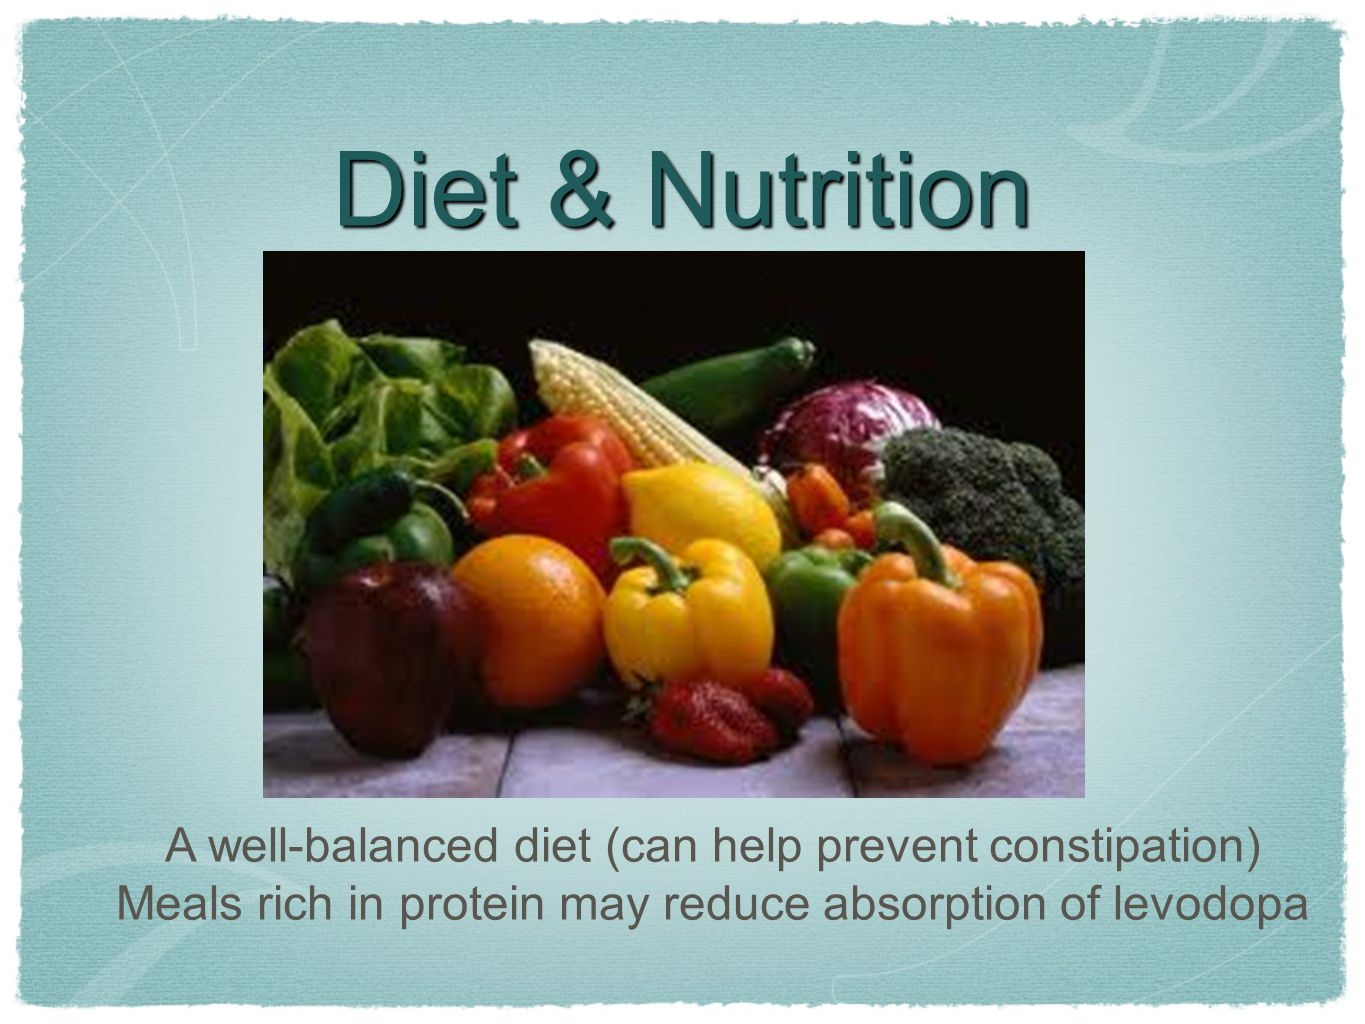 Diet & Nutrition A well-balanced diet (can help prevent constipation) Meals rich in protein may reduce absorption of levodopa